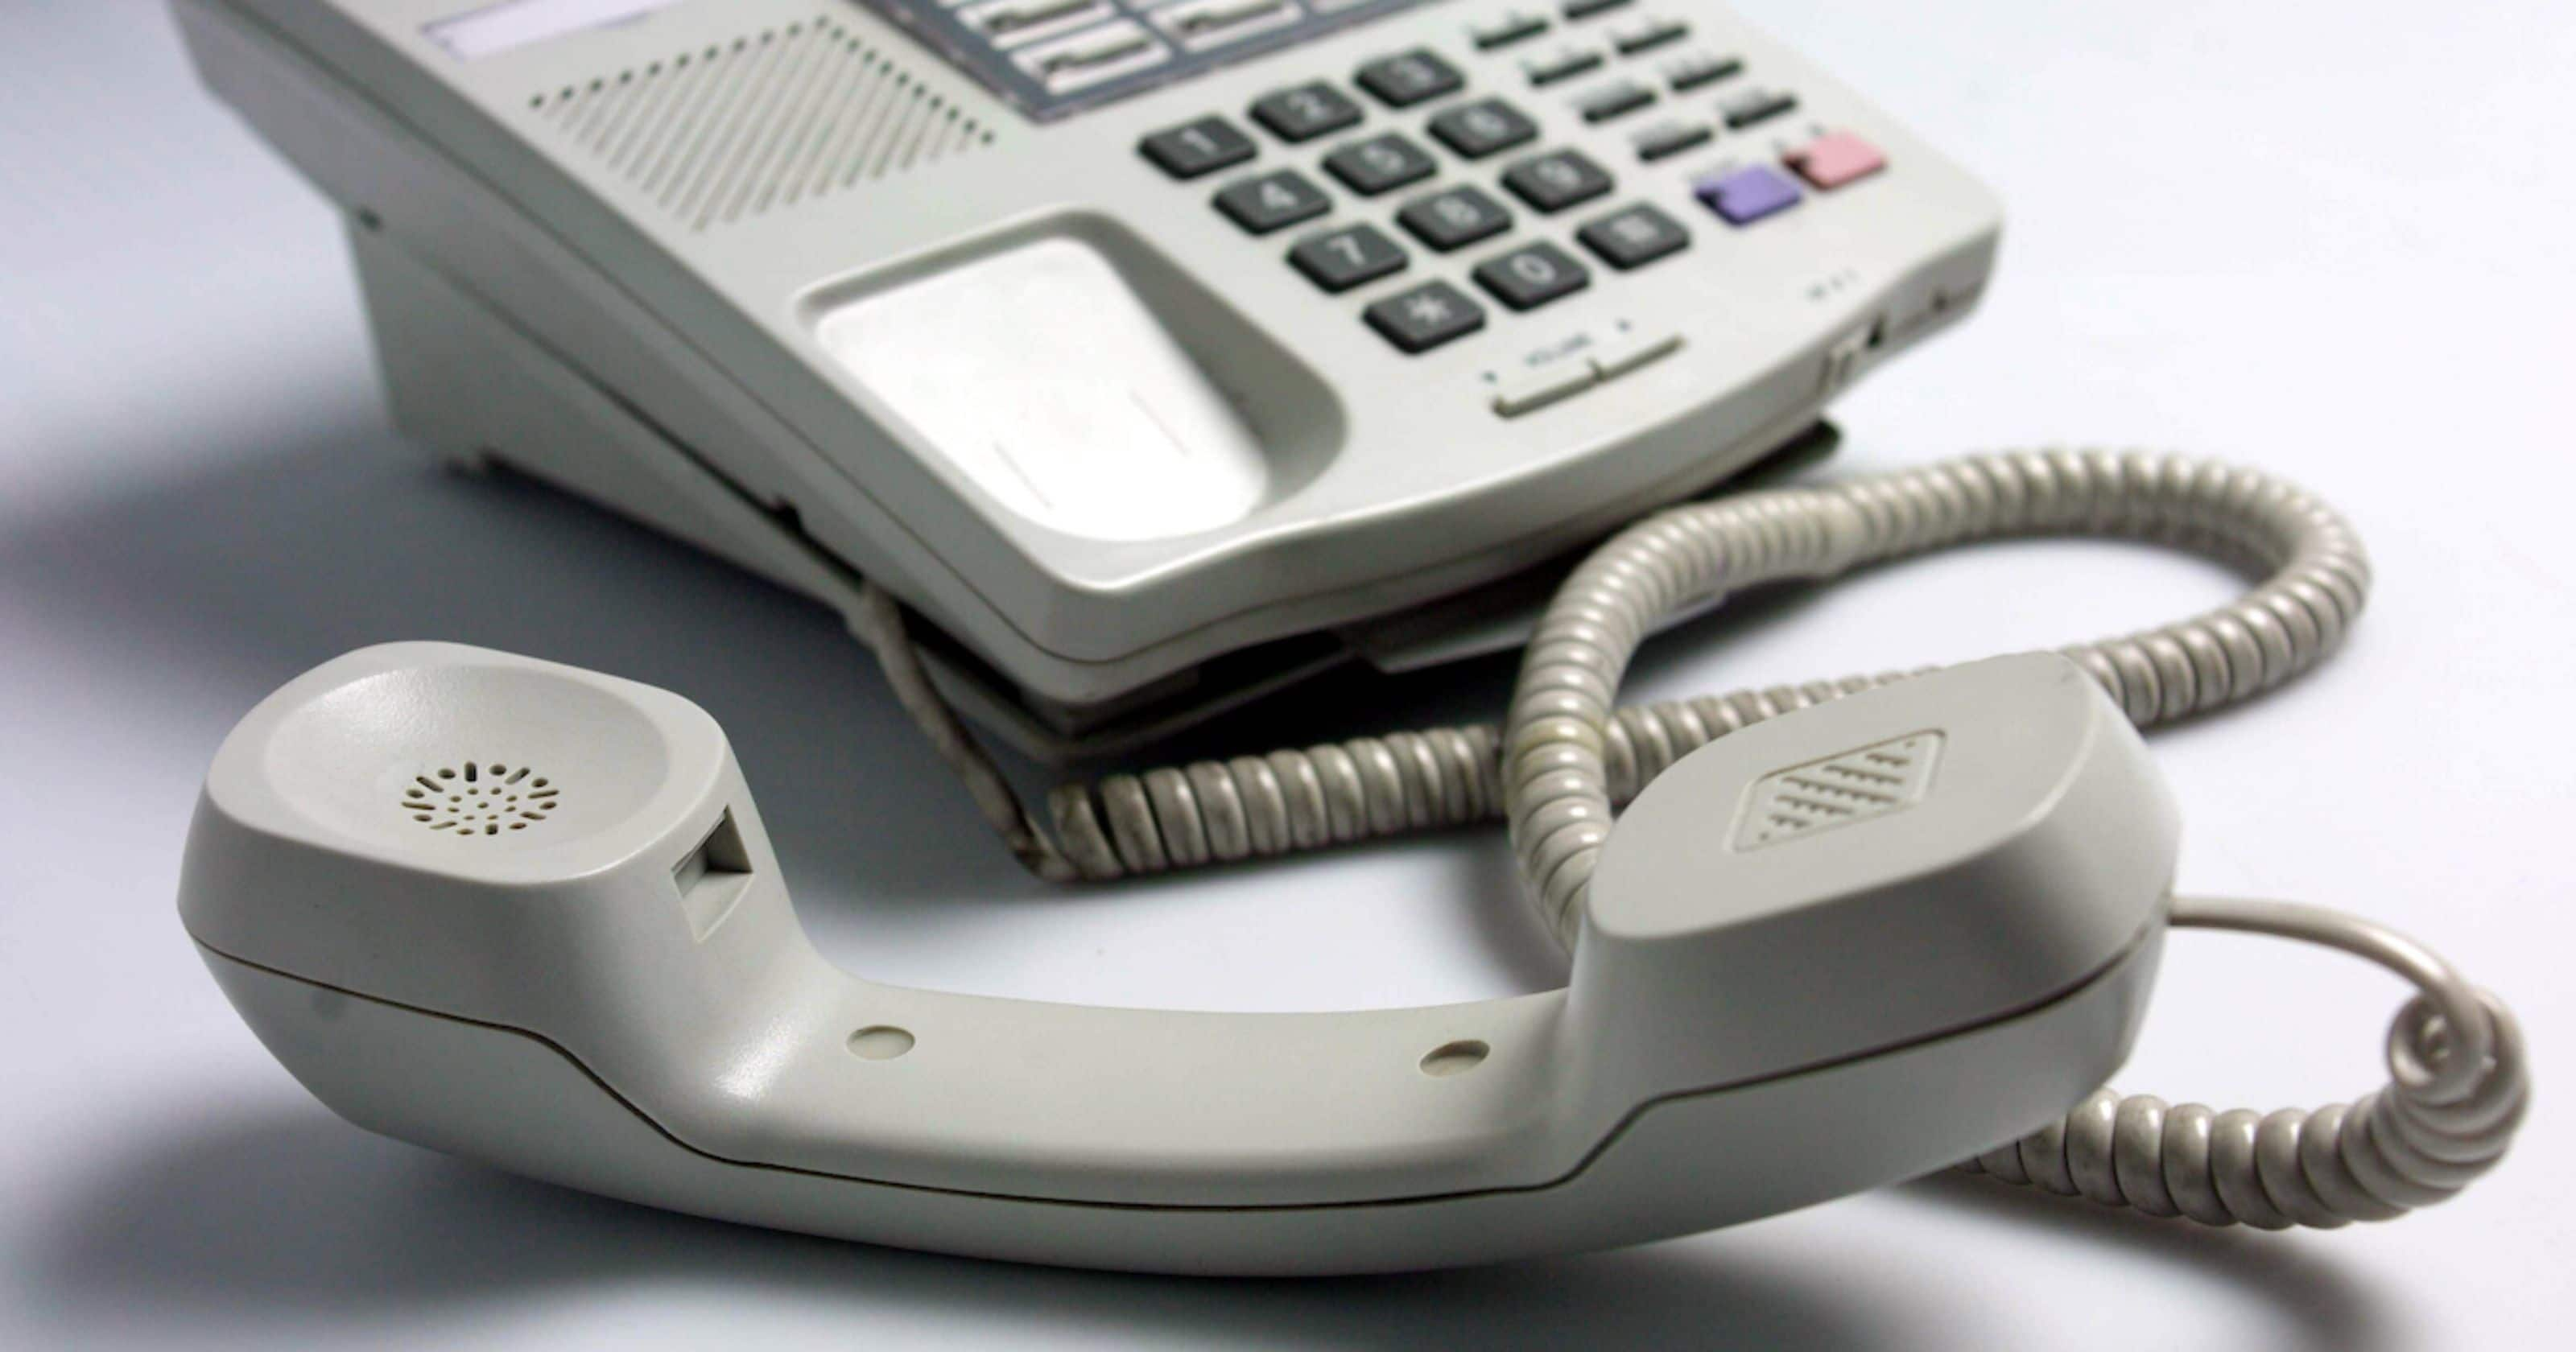 PSA: Did Dish Network telemarketer call you? You could get $1,200 from lawsuit